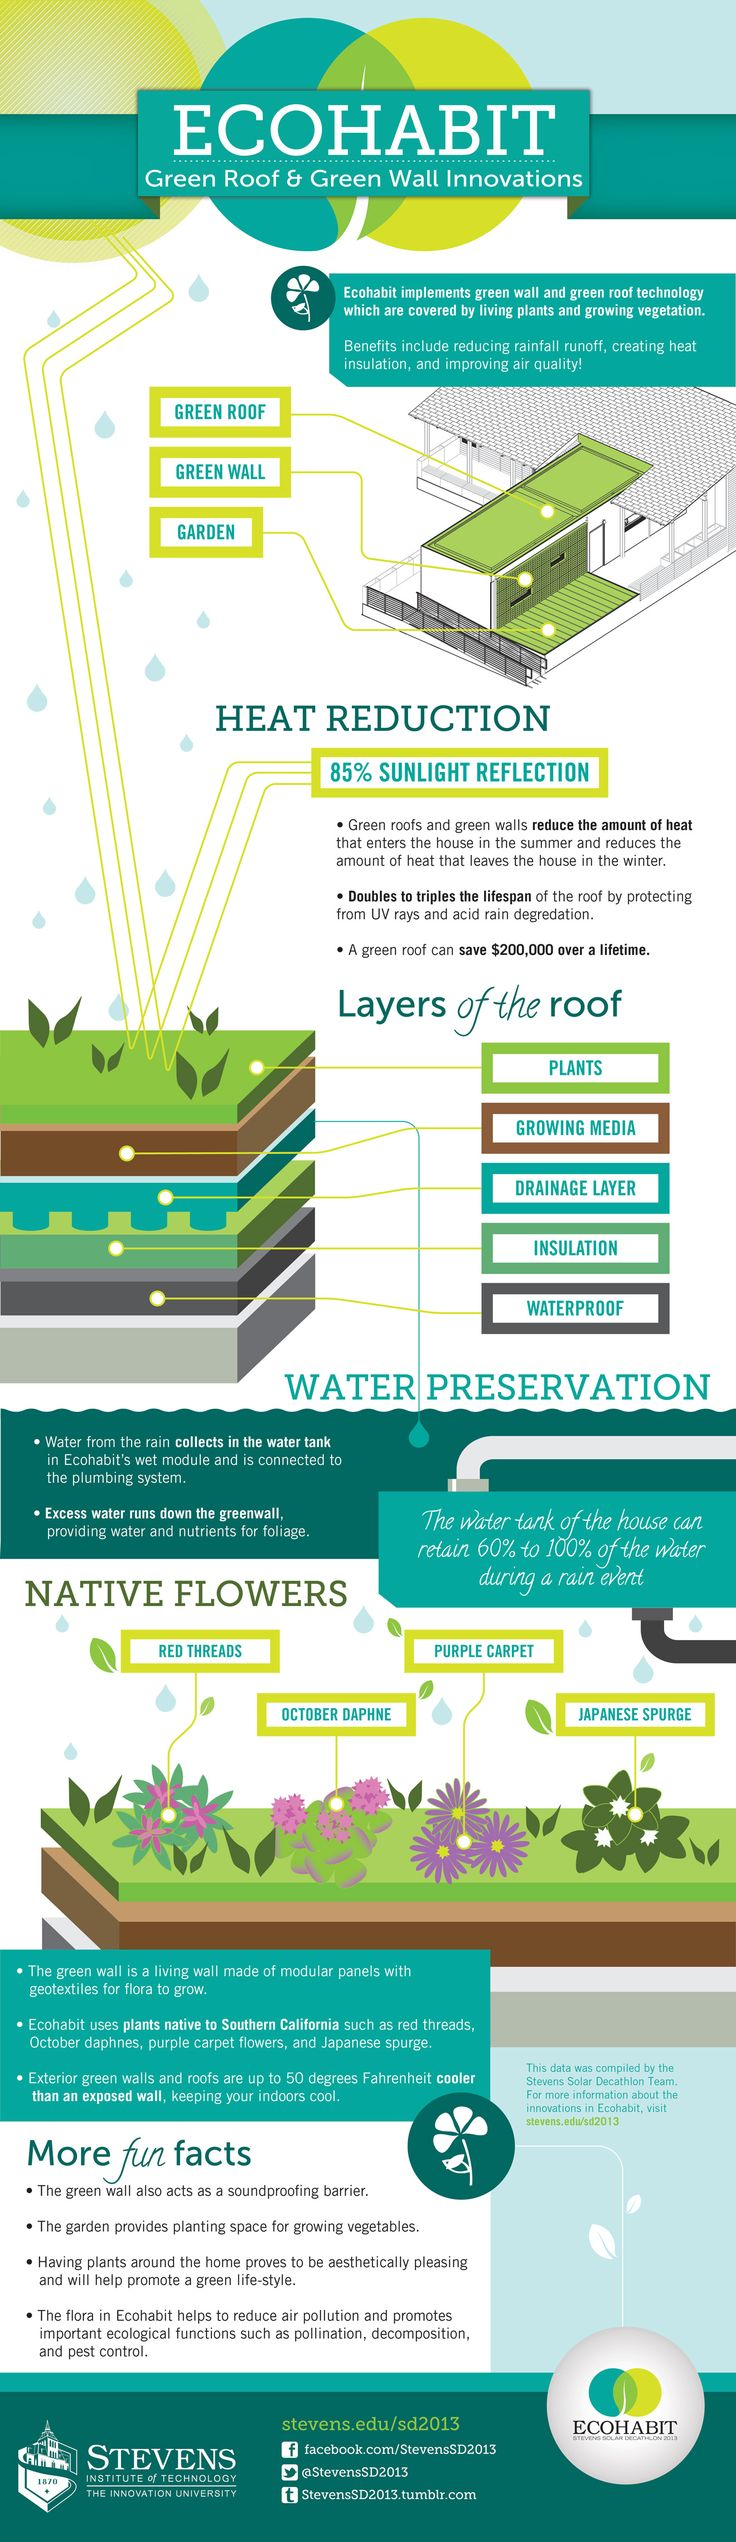 Check out these info graphics on the Eco Habit that will soon be our new Veteran...